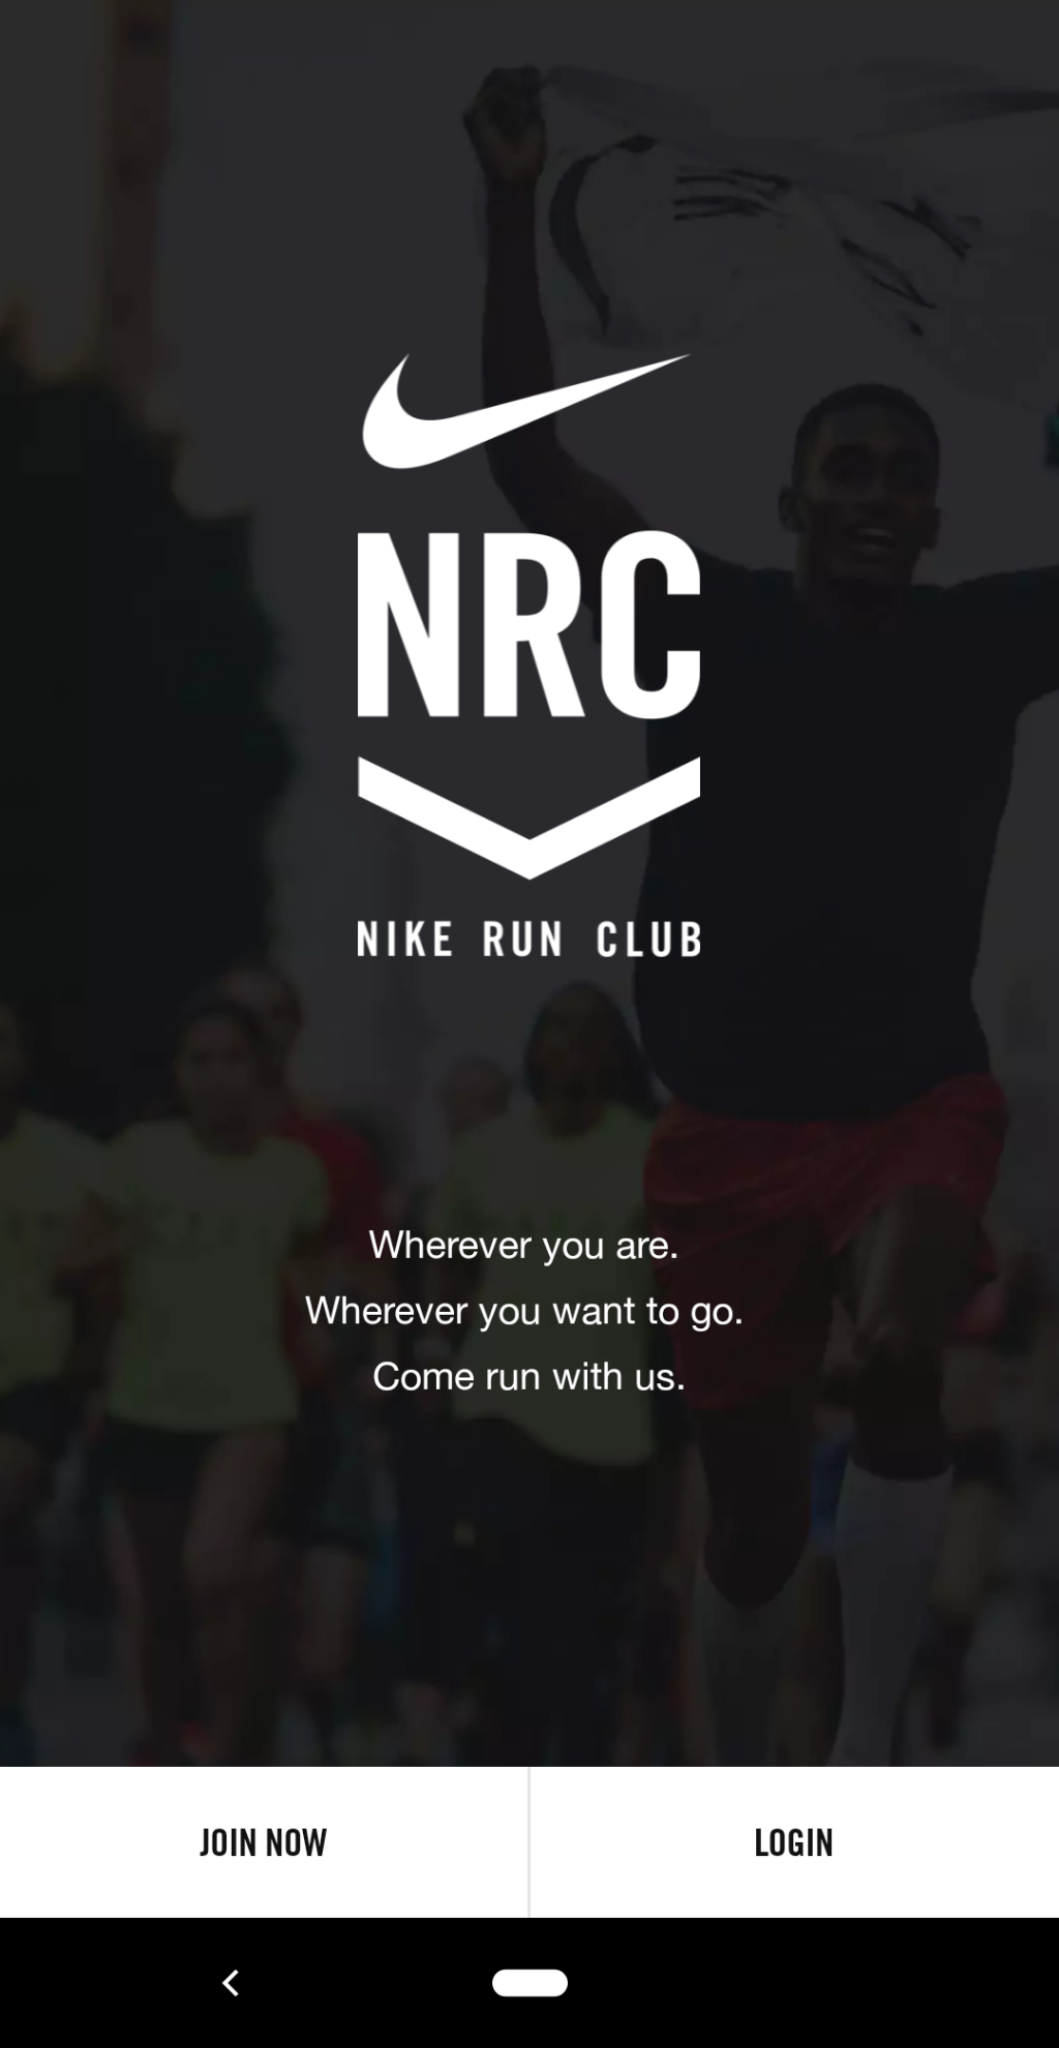 this is a mobile screenshot image of the nike run club app login screen